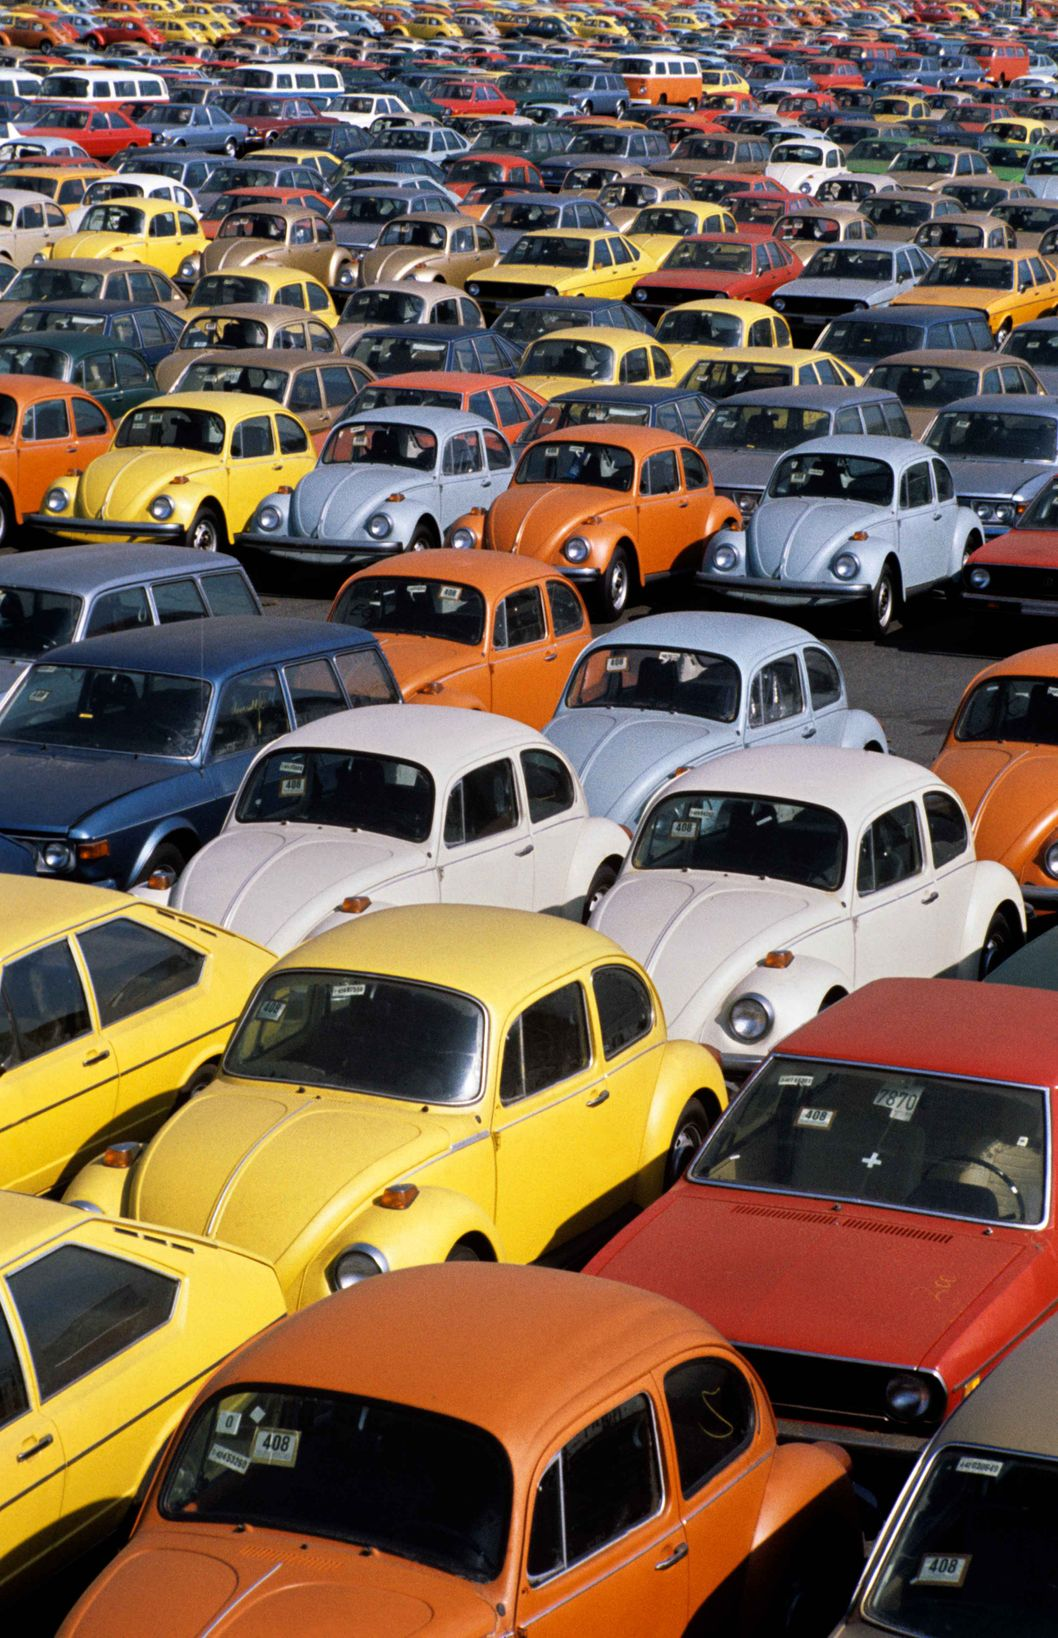 Newark, New Jersey / May 30, 1973 Rows of Volkswagen Beetles are unloaded in the port of New York. During the oil crisis, the US auto market, famously flooded with massive gas-guzzlers, was suddenly turning its eye to compact, energy-efficient cars. The Volkswagen Bug was a big hit due to its low price and fuel economy.